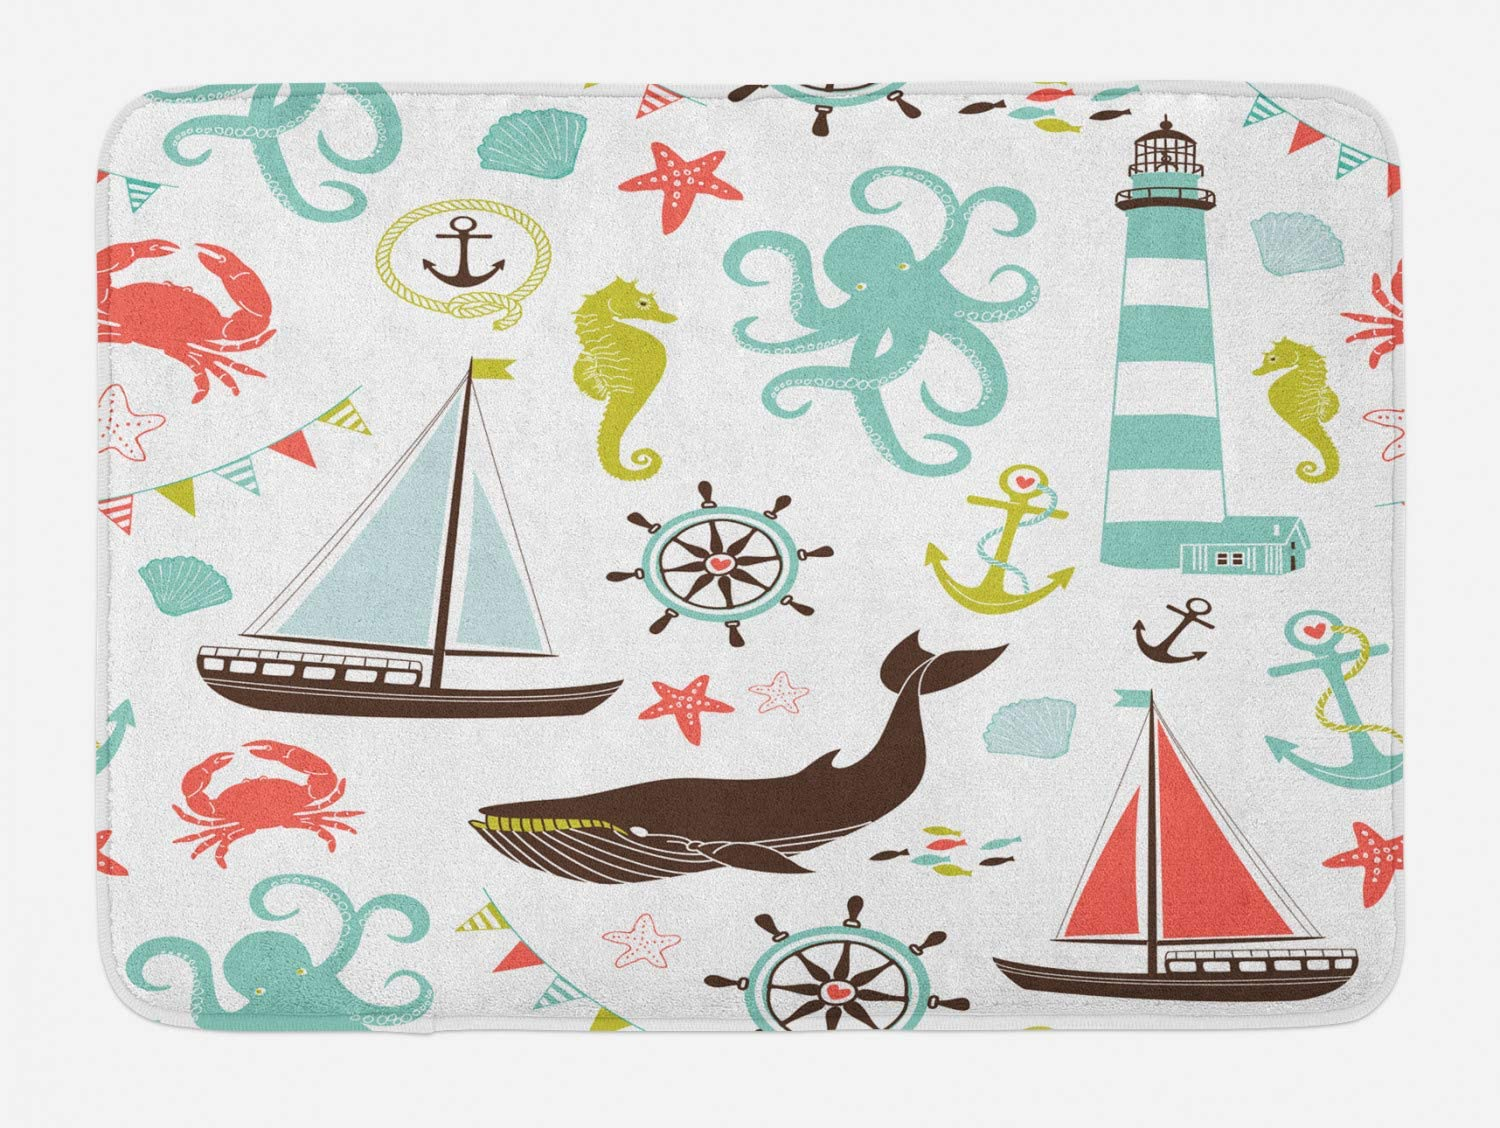 Ambesonne Nautical Bath Mat, Pastel Colored Composition of Lighthouse Sailboat Fish Shells Octopus and Anchor, Plush Bathroom Decor Mat with Non Slip Backing, 29.5